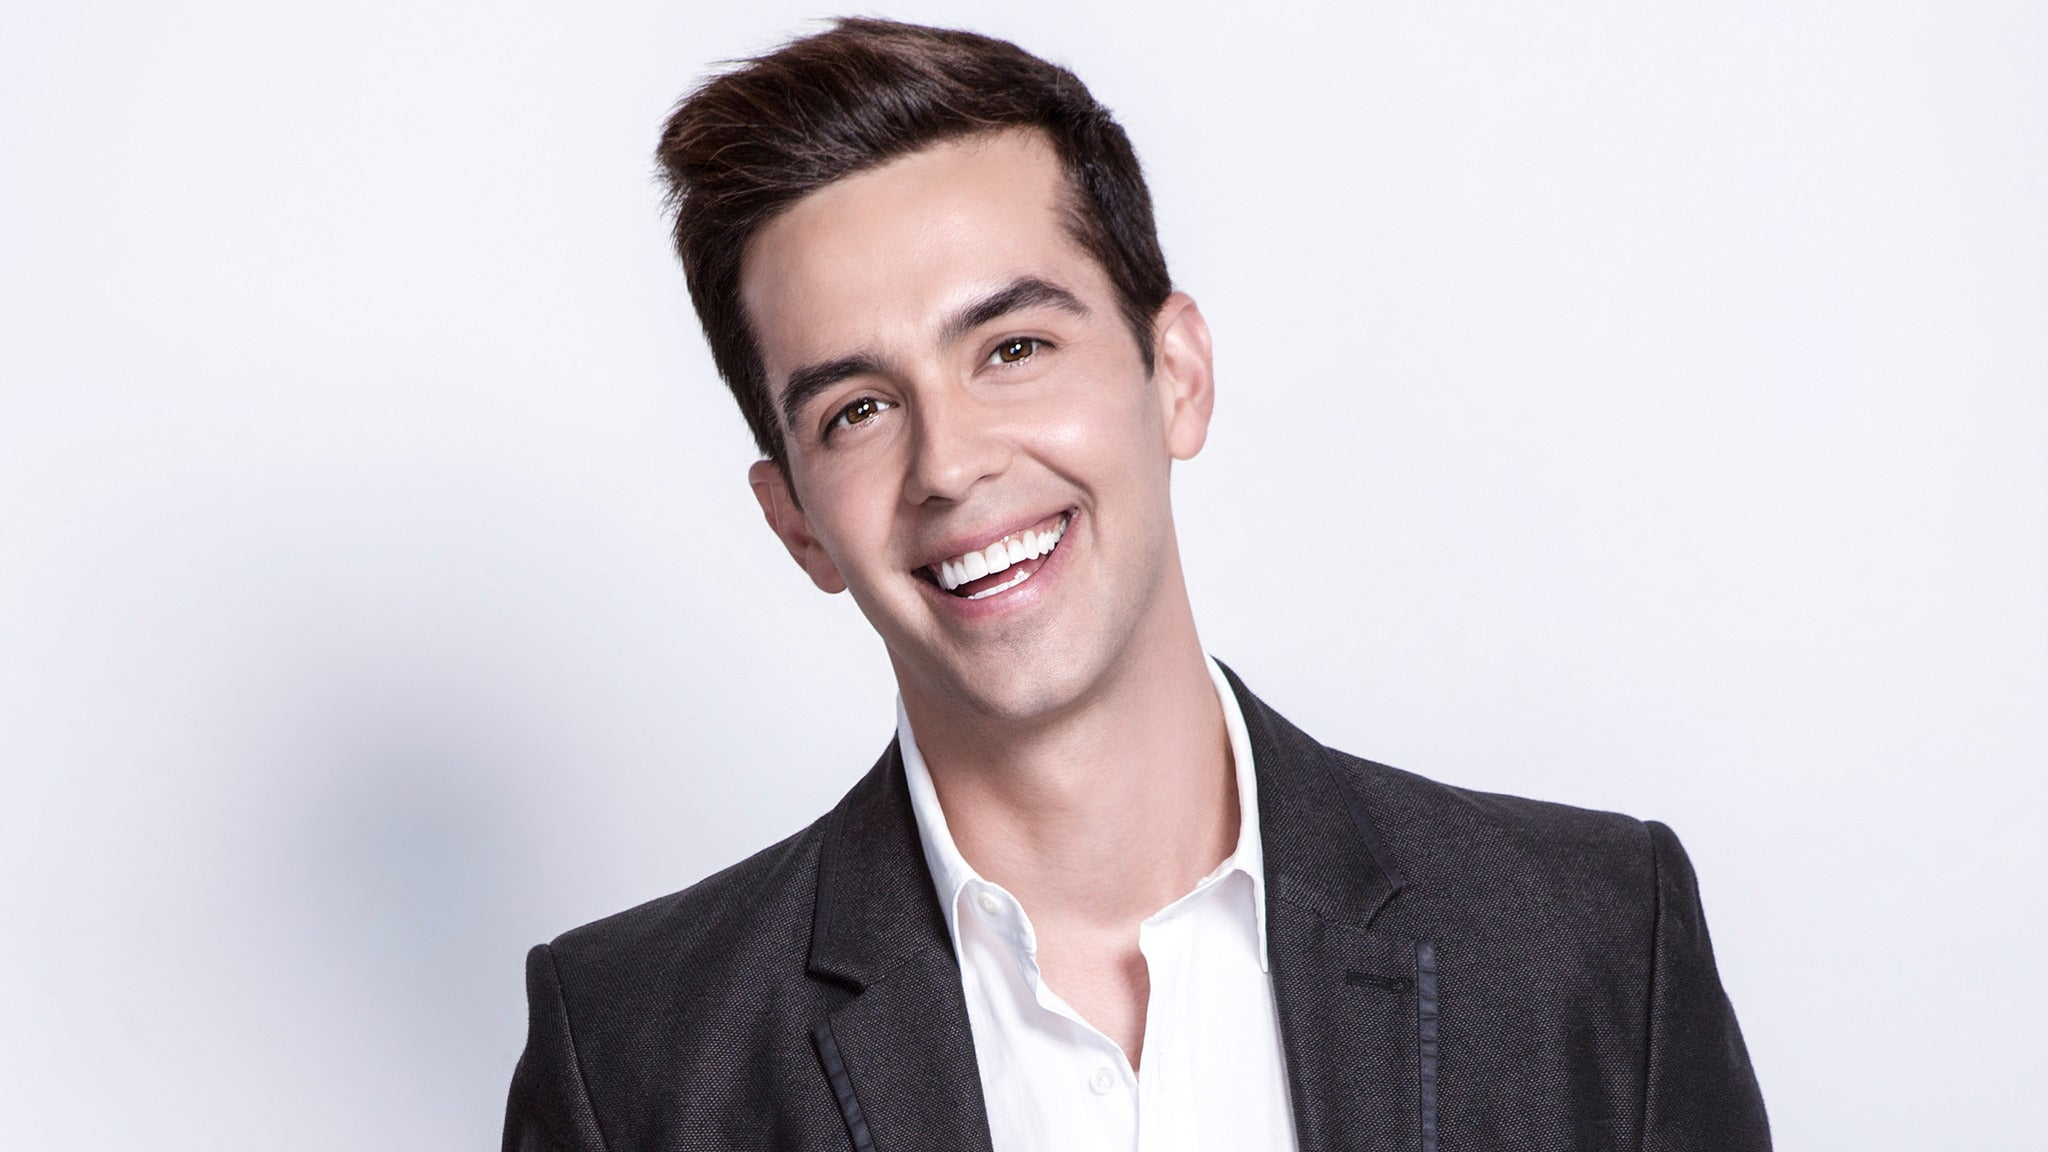 AEG presents Michael Carbonaro Live!